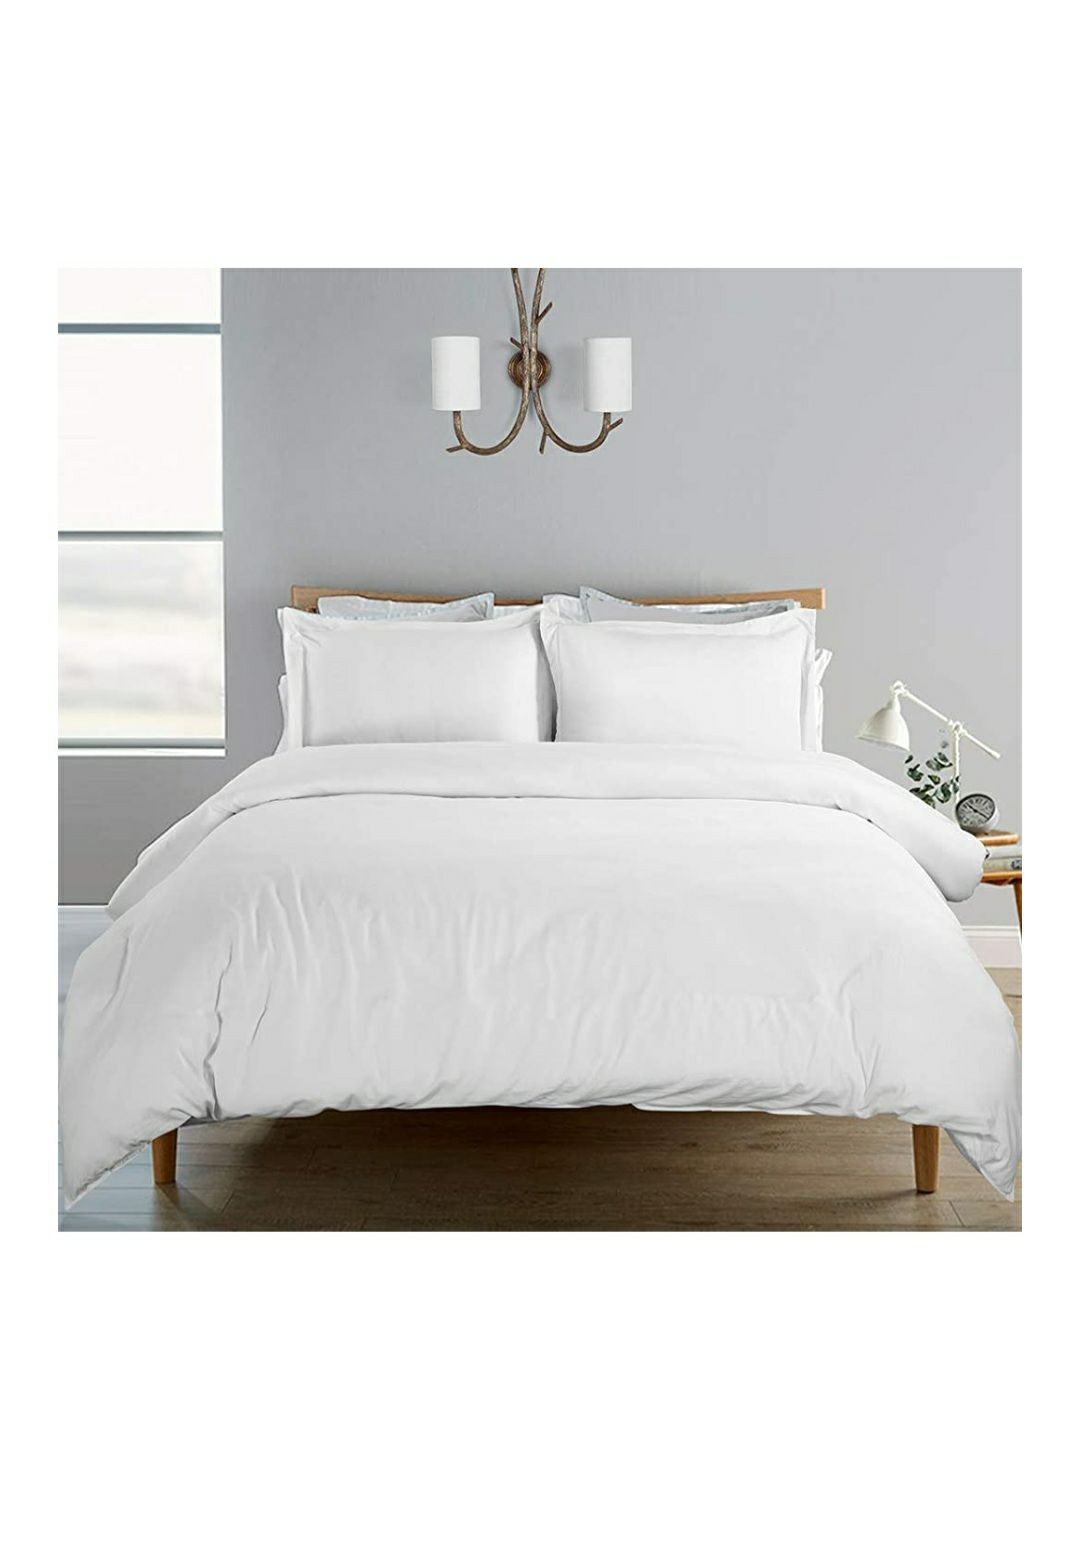 Sormag Queen Duvet Cover